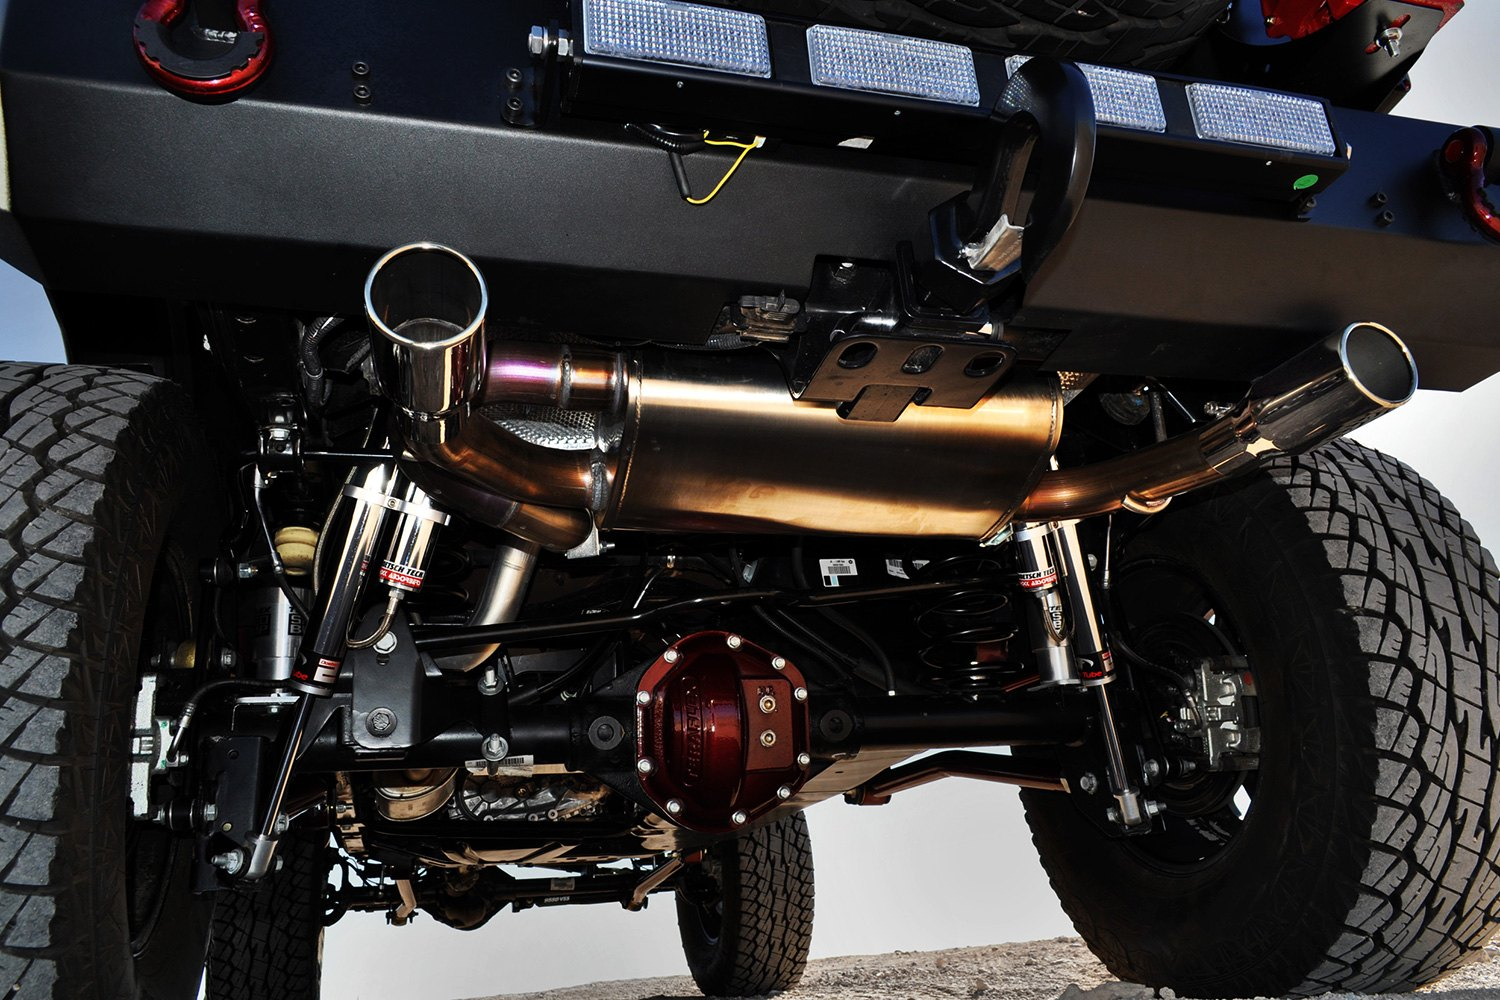 Volant stainless steel dual axle back exhaust